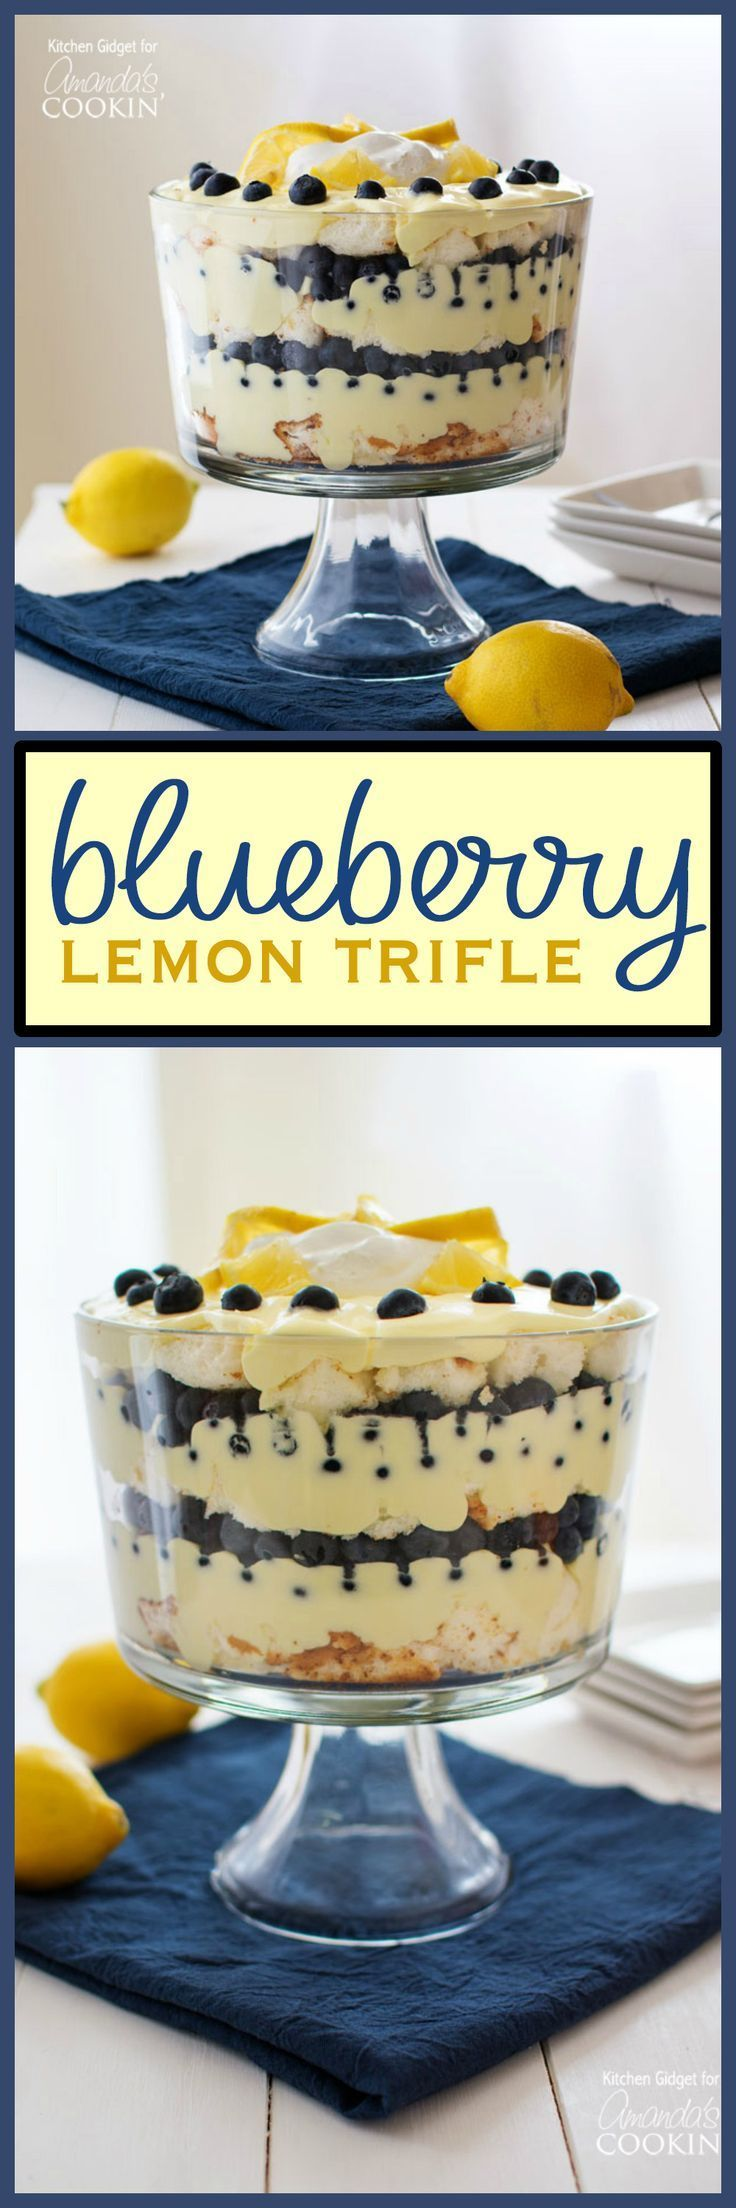 blueberries and bright lemon pudding combine in a stunning dessert. This mouthwatering lemon blueberry trifle is impressive yet incredibly easy!